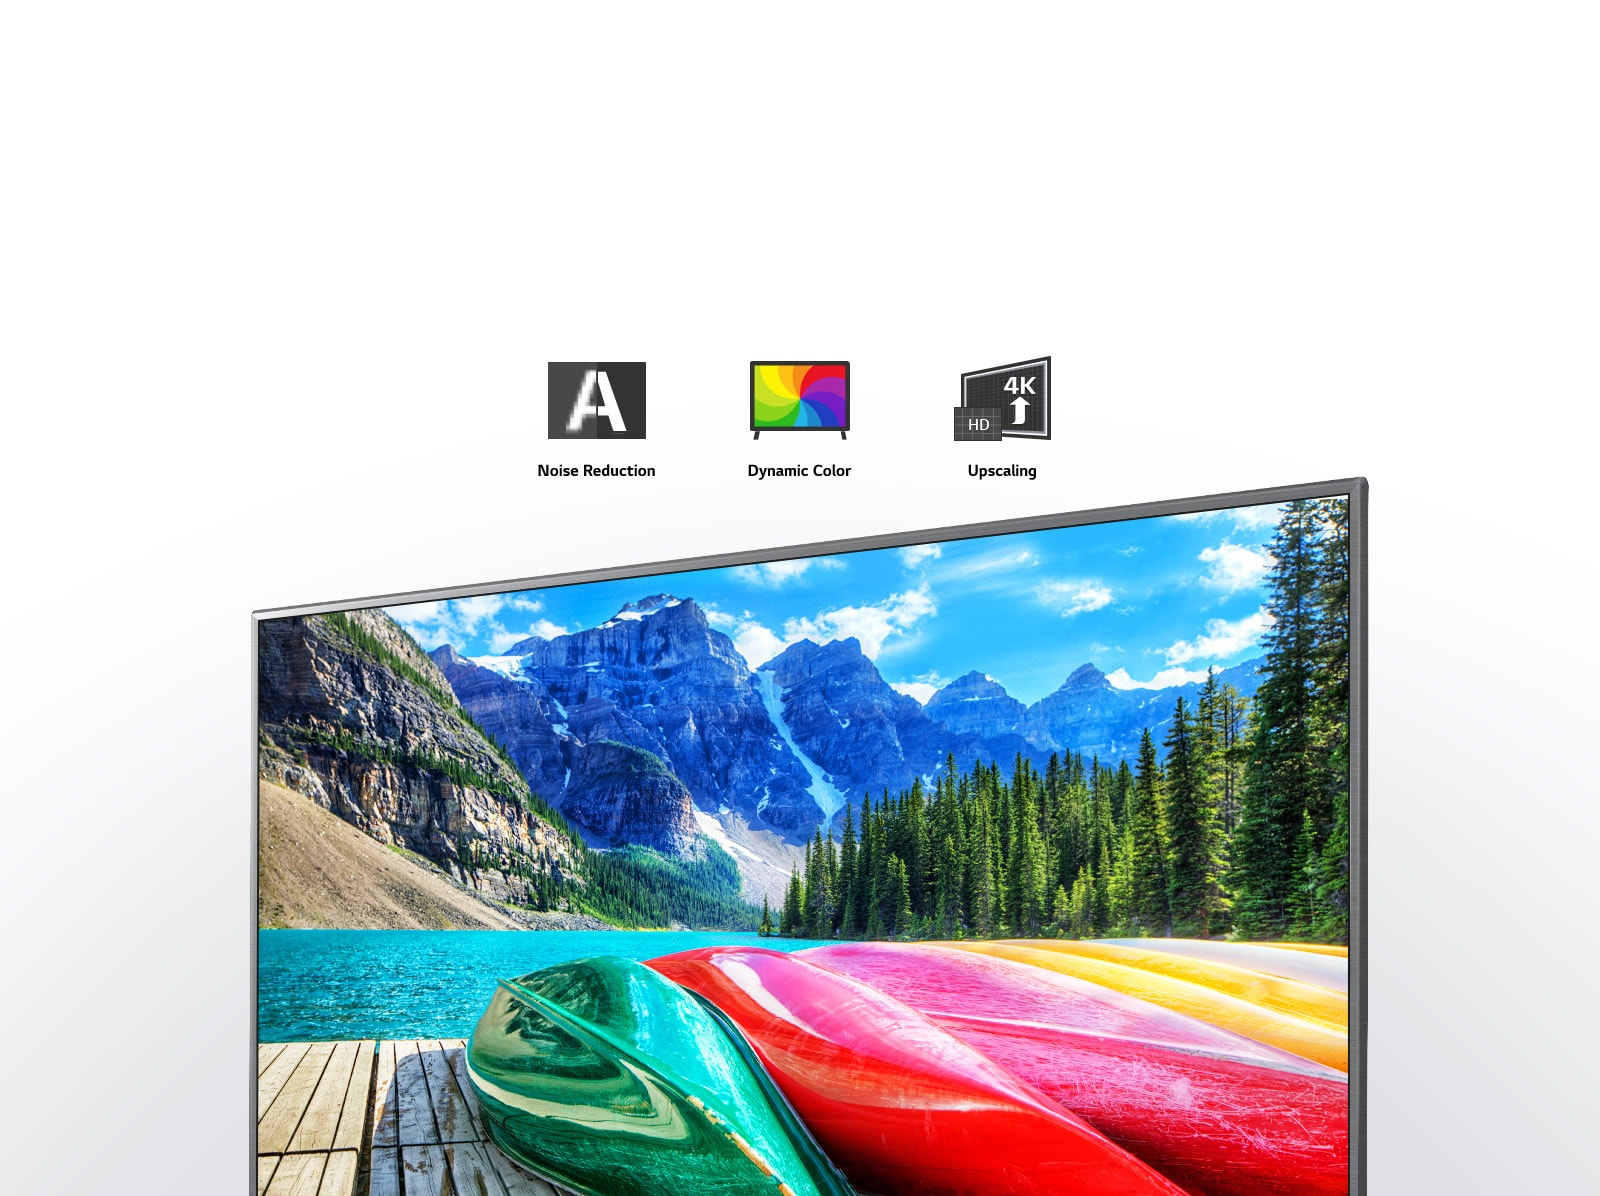 Noise reduction, dynamic color, and upscaling icons and a TV screen showing  a scenic shot of mountains, forest, and a lake.